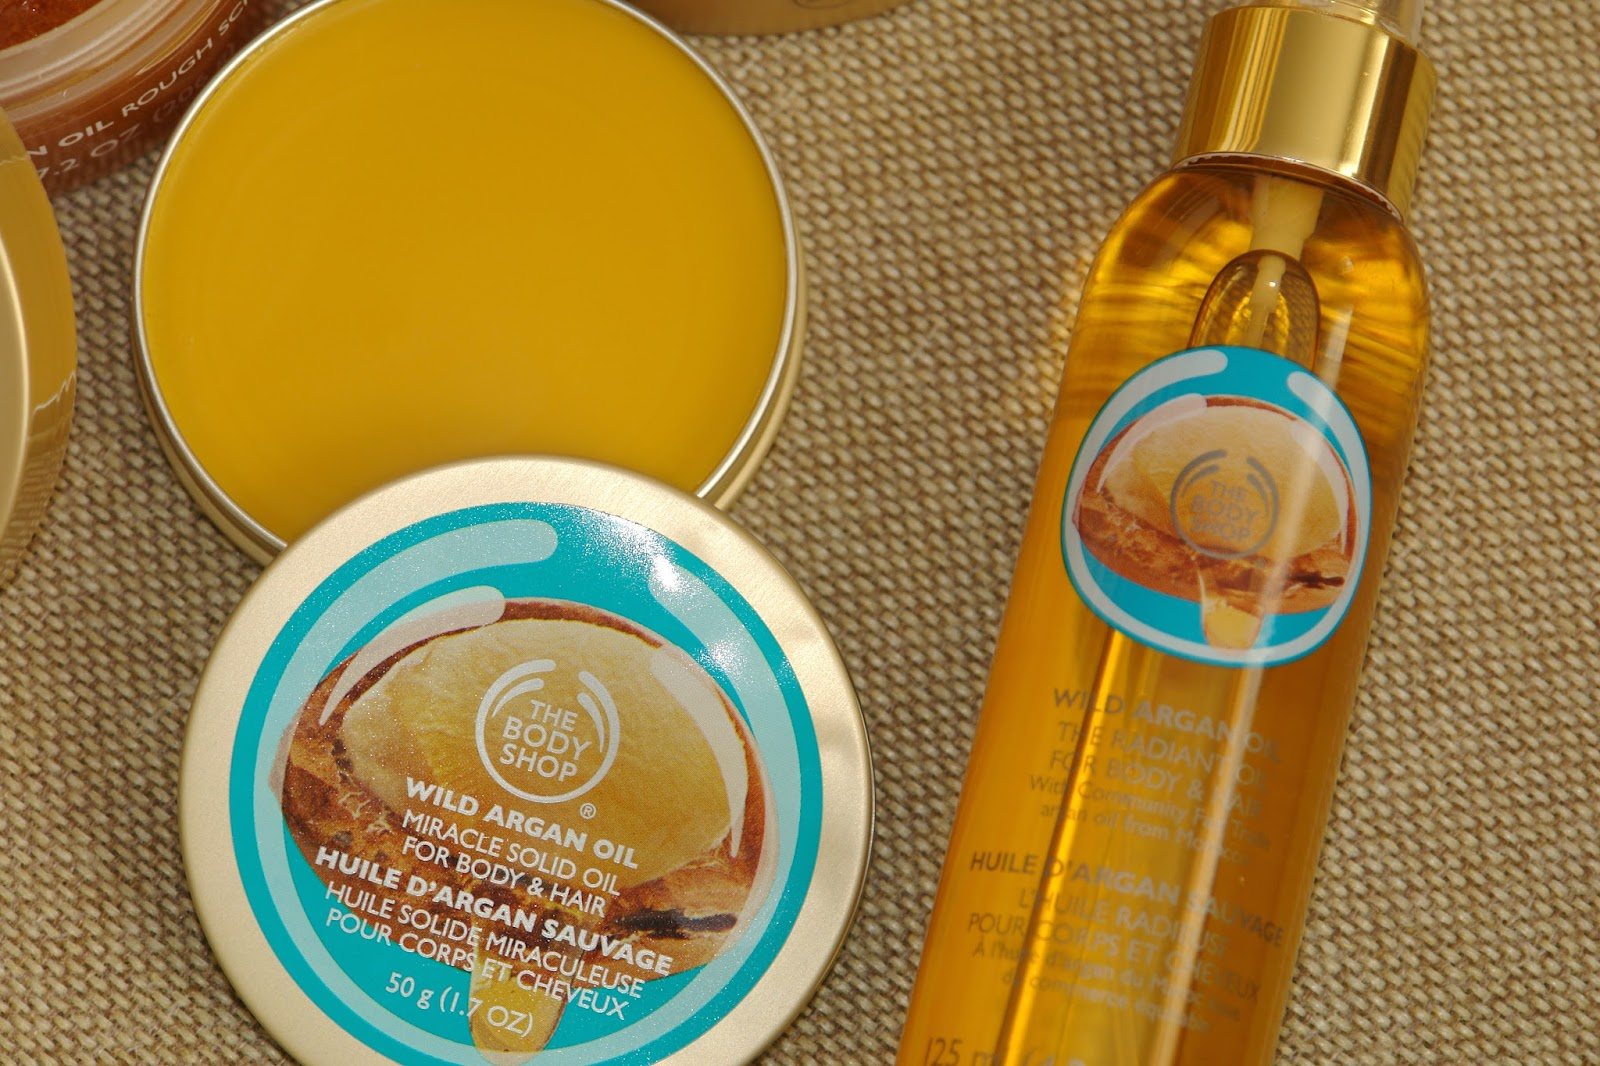 The Body Shop Wild Argan Oil range, beauty, review, The Body Shop, wild argain oil, #argan, argan oil, blogger, UK blog, The Radiant Oil for Body & Hair, Miracle Solid Oil, Solid Oil Lips